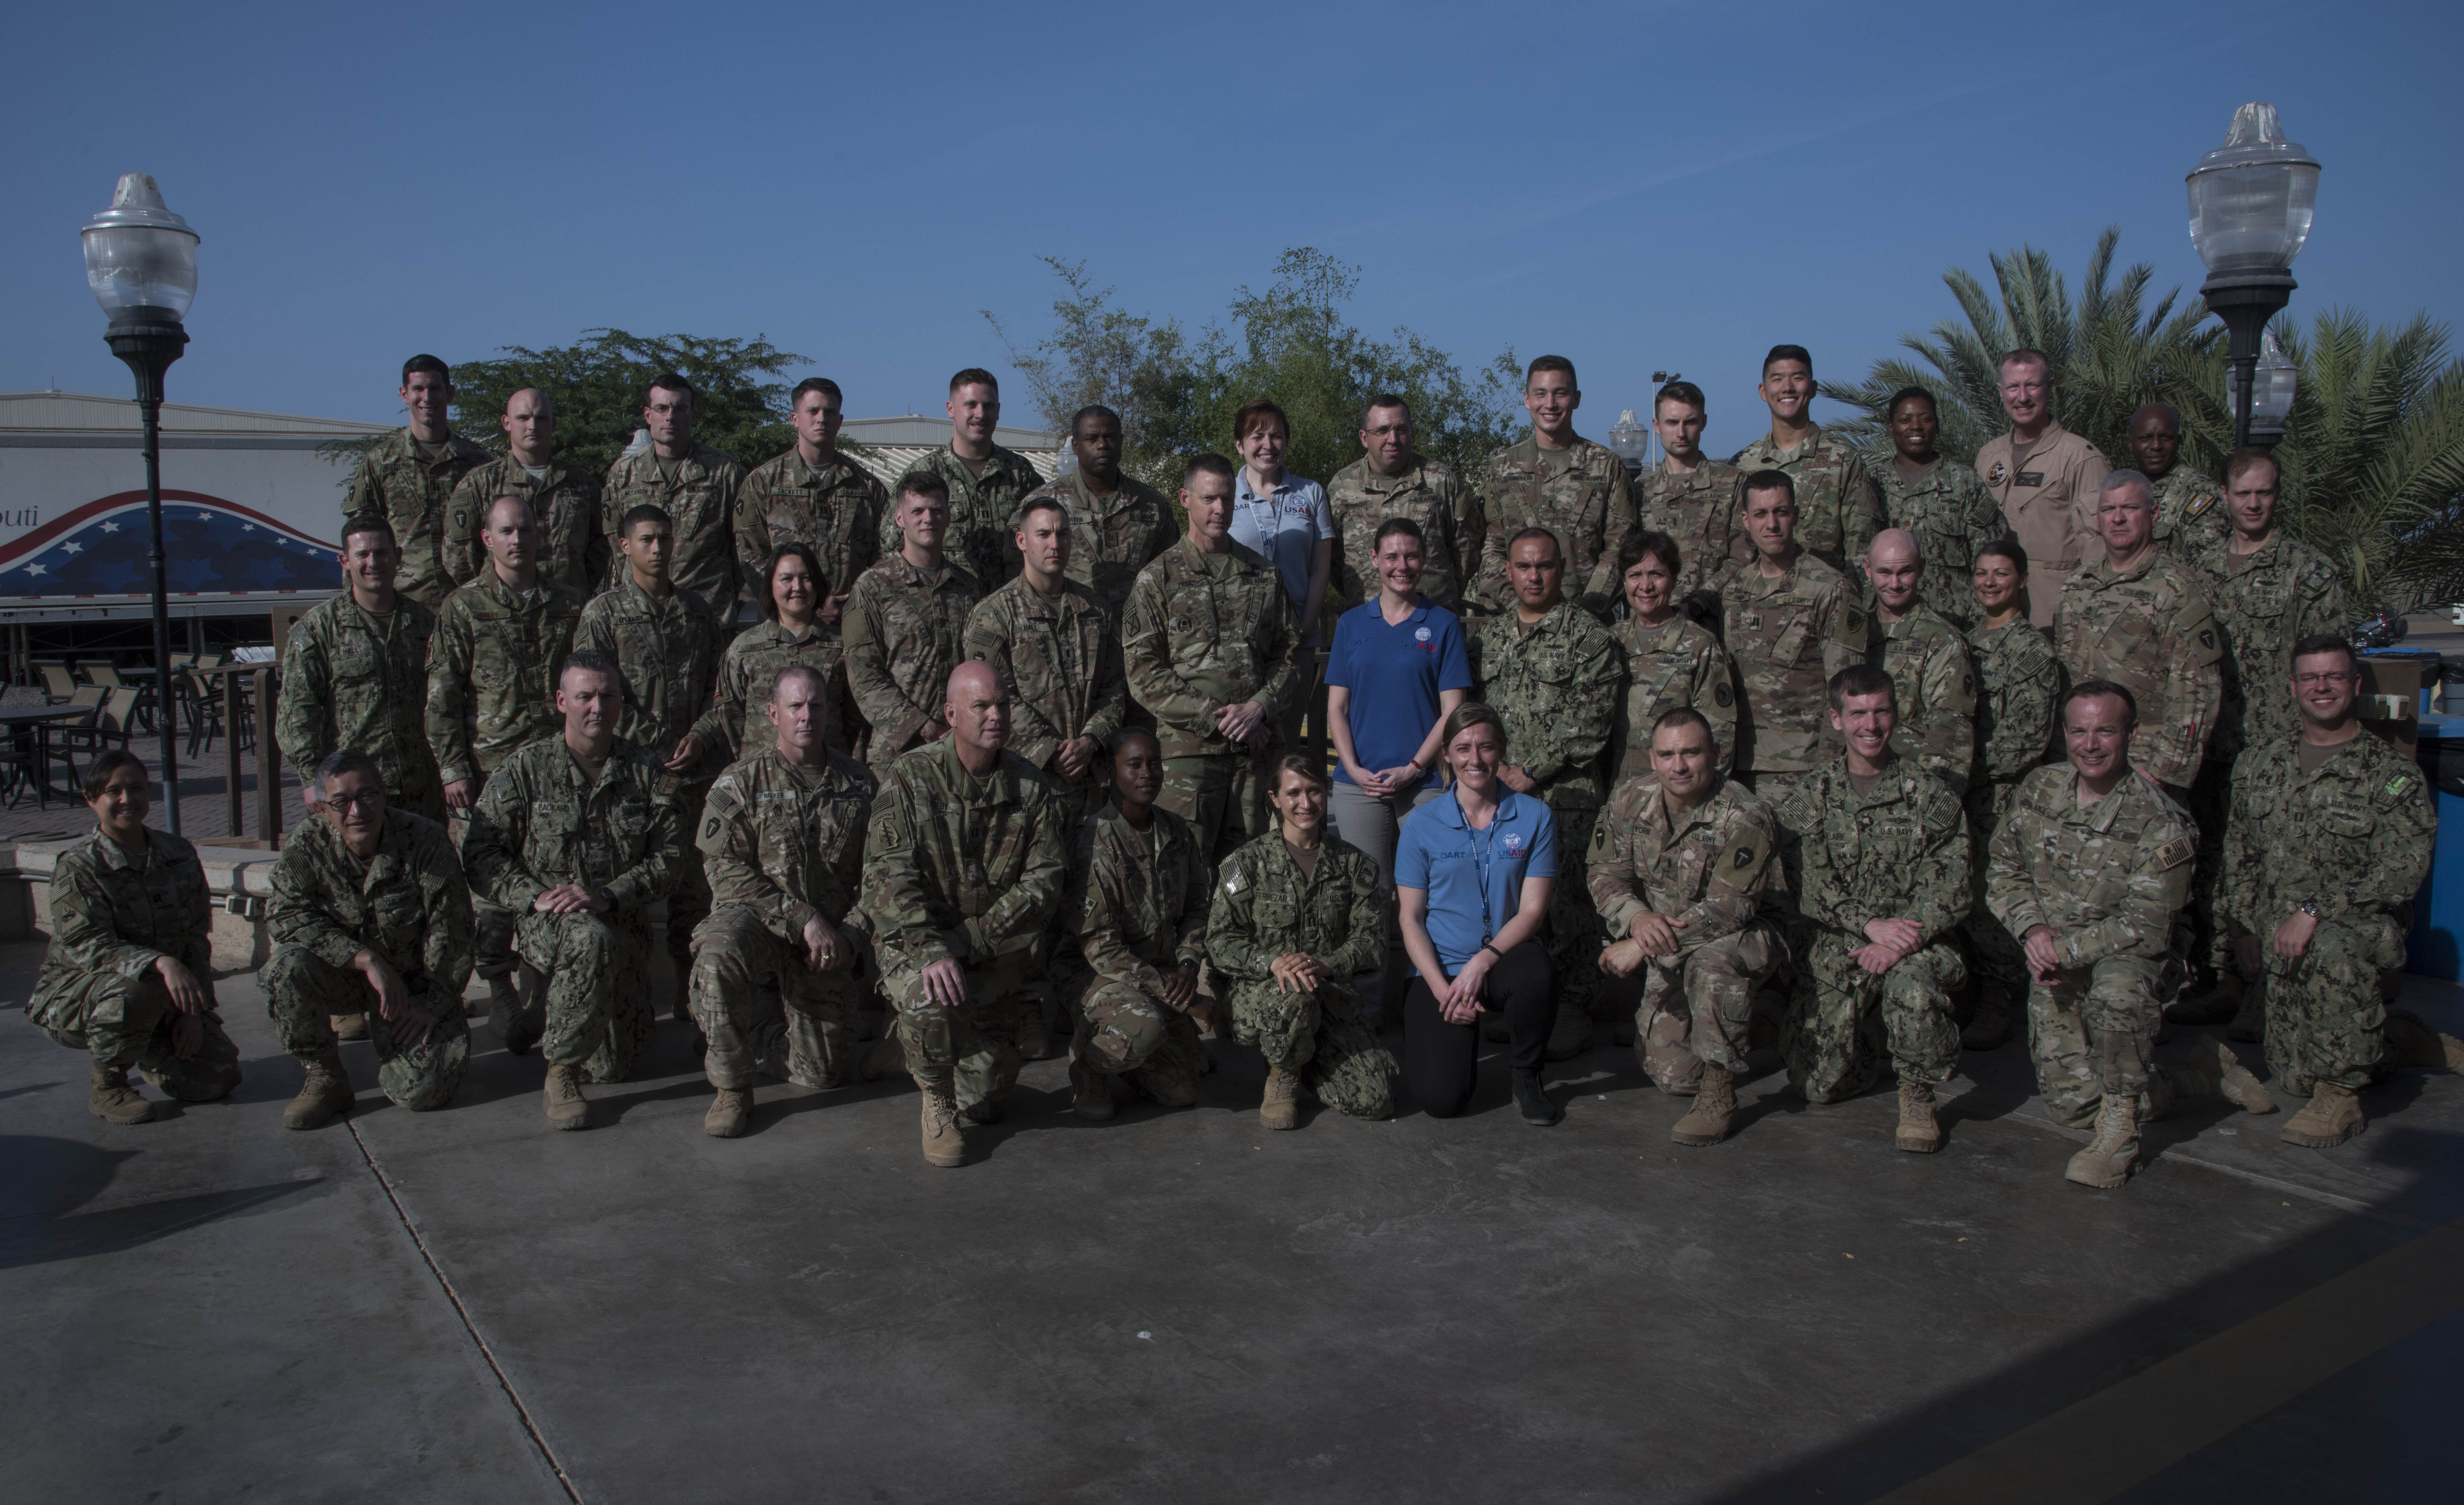 Service members deployed to Camp Lemonnier, Djibouti, pose for a class photo with instructors from the U.S. Agency for International Development (USAID) at Camp Lemonnier, Djibouti, March 7, 2018. Members attended the two-day USAID Joint Humanitarian Operations Course, which highlighted international disaster response, best practices and the U.S. military's role when supporting foreign humanitarian assistance and disaster relief operations. (U.S. Air National Guard photo by Staff Sgt. Allyson L. Manners)